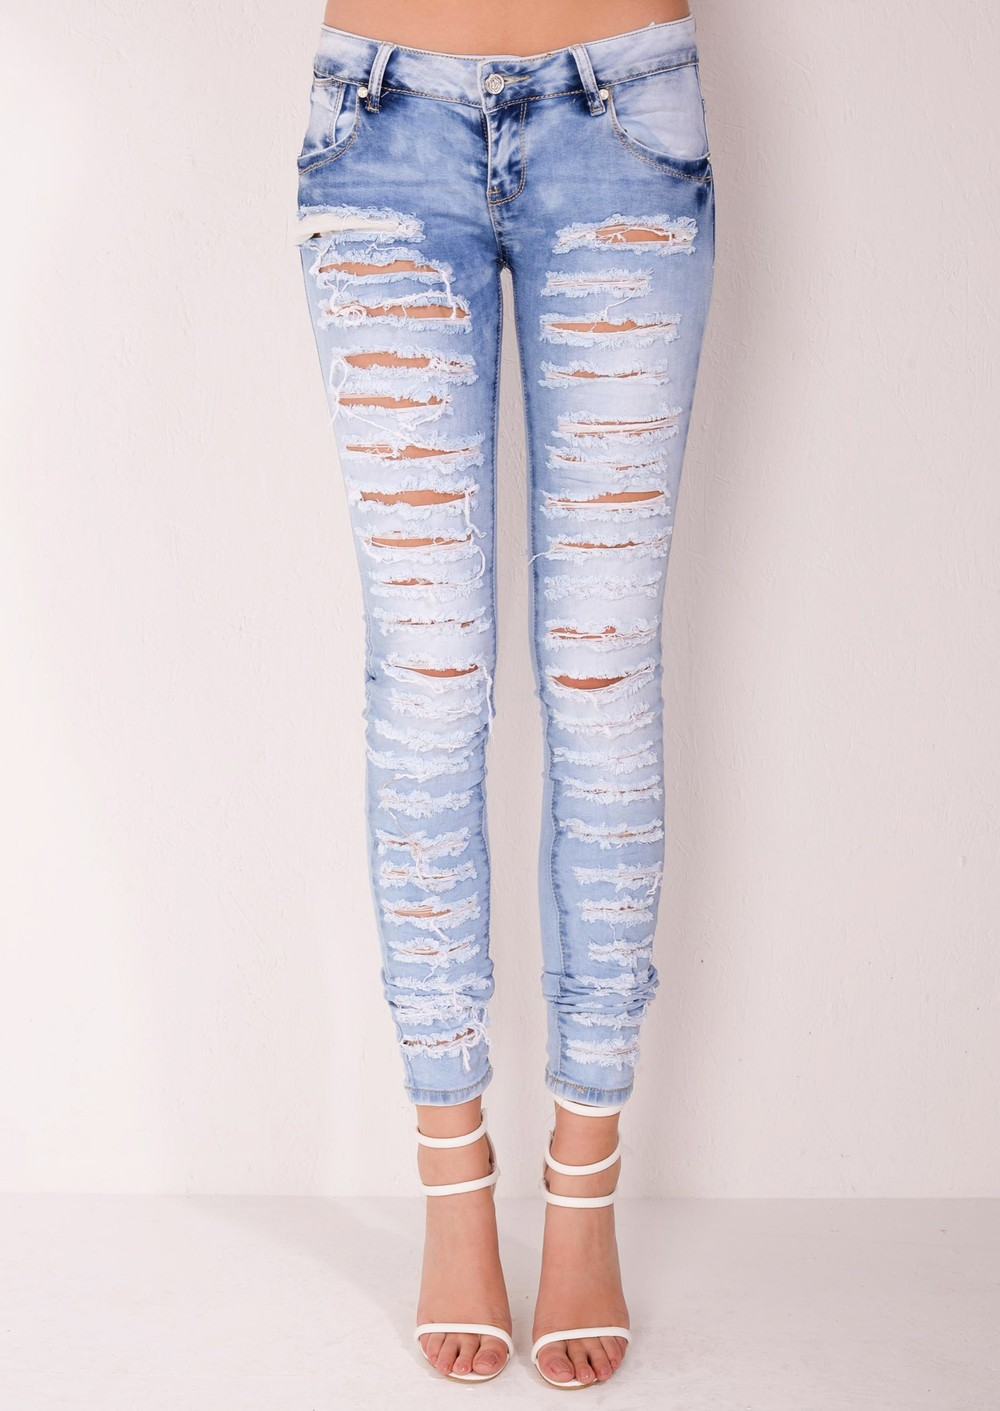 wondershopping New Fashion Women Casual Slim Pencil Pants Skinny Ripped Jeans Denim Trousers. Sold by Wondershopping. $ - $ TheMogan Junior's Mid-High Rise Distressed Ripped Super Skinny Jeans. Sold by TheMogan. $ - $